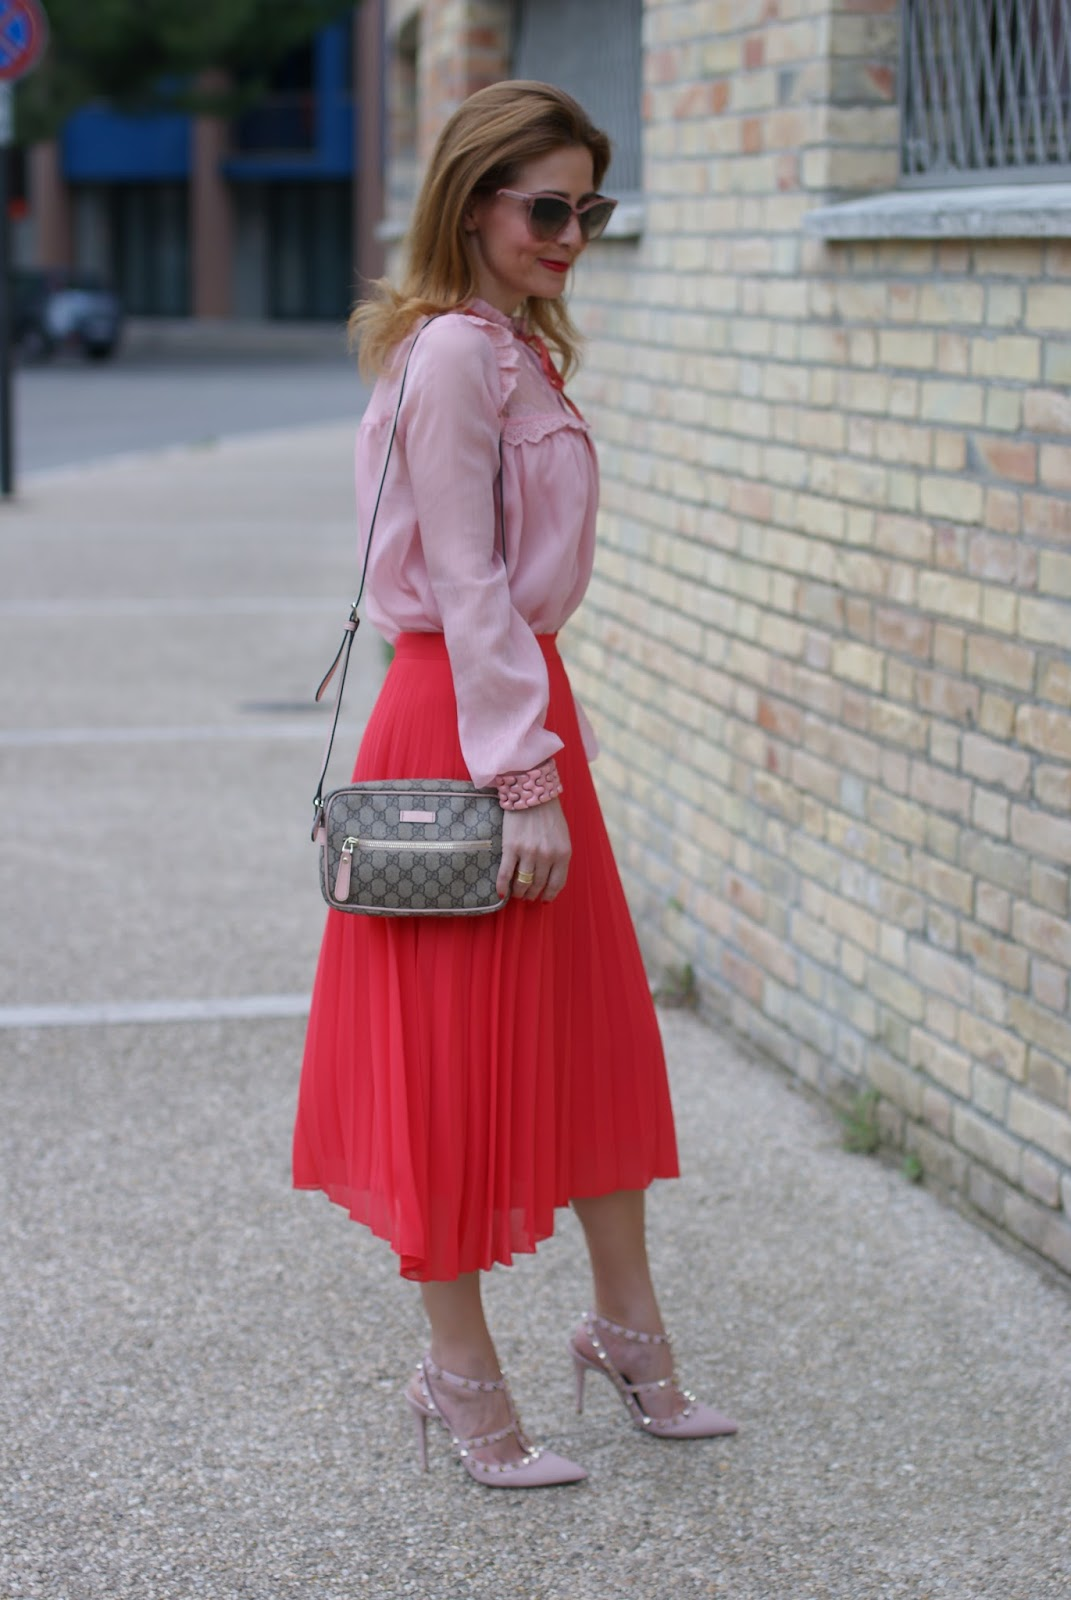 Gucci inspired outfit with valentino rockstud in pink, red pleated midi skirt and chiffon and lace pink shirt on Fashion and Cookies fashion blog, fashion blogger style